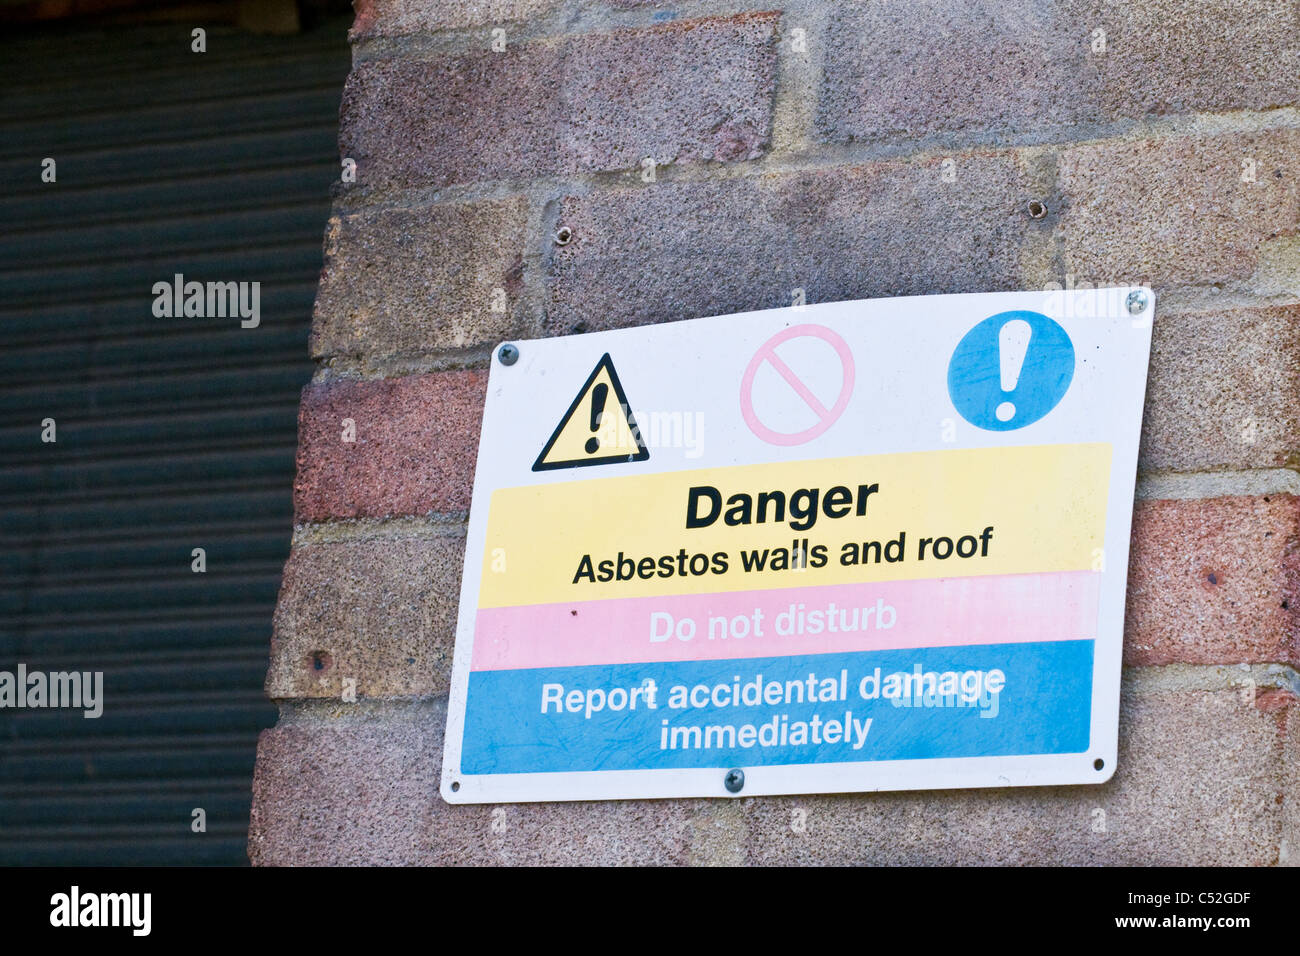 Danger Asbestos walls and roof sign, do not disturb, report accidental damage immediately - Stock Image